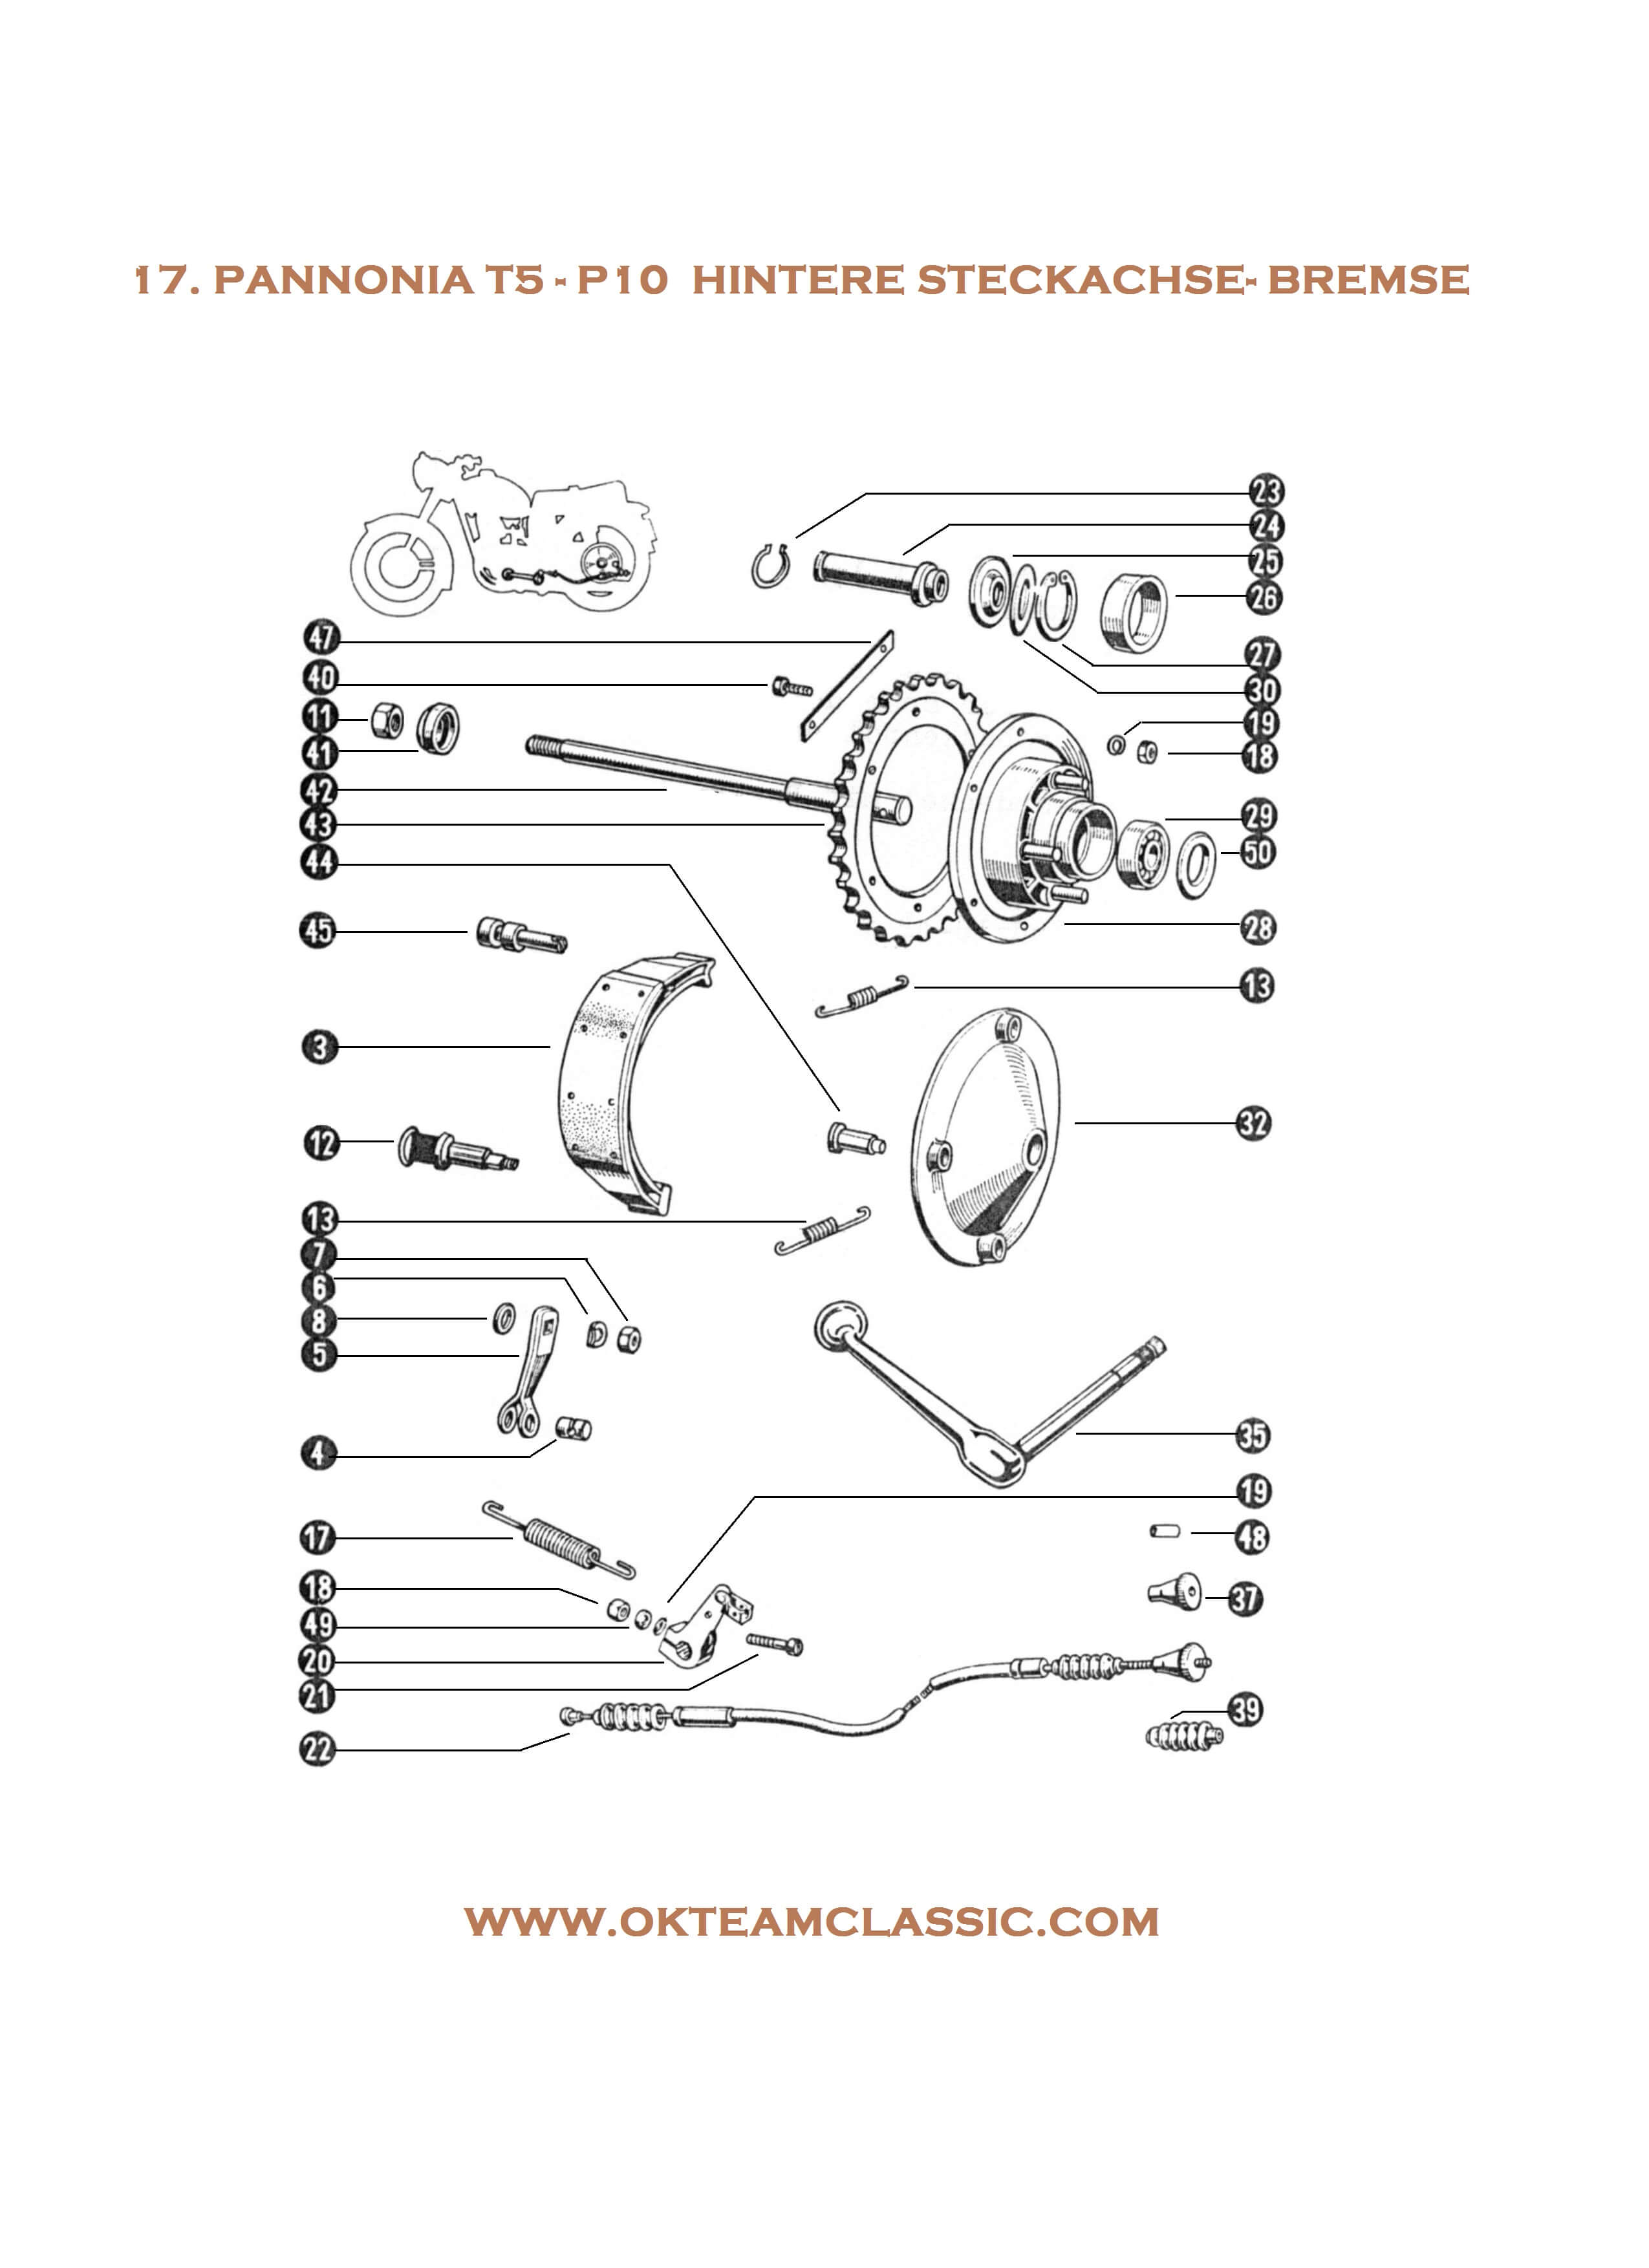 17. Rear thru axle – brake